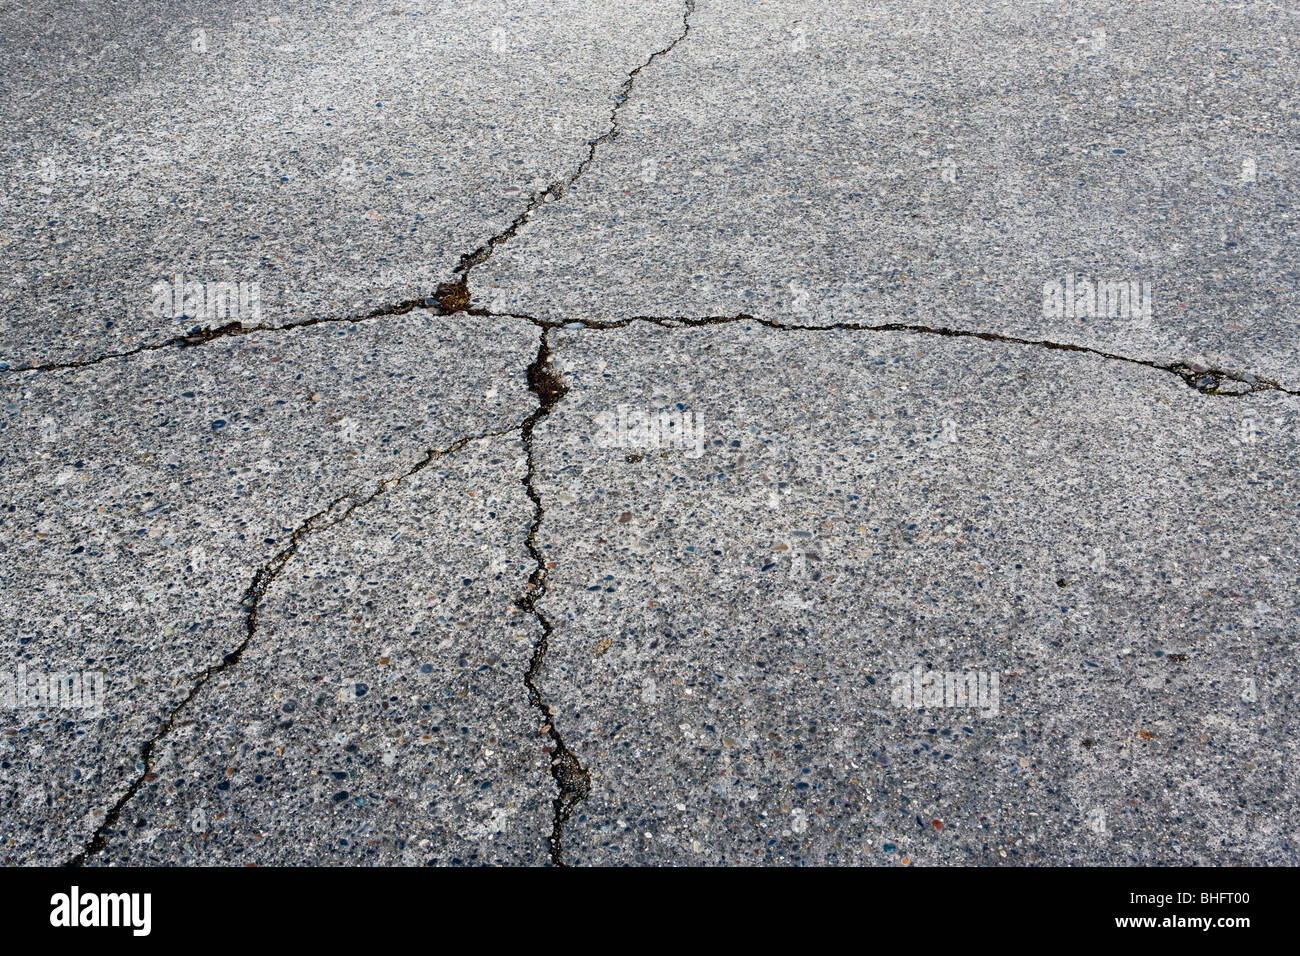 A cracked concrete street. - Stock Image